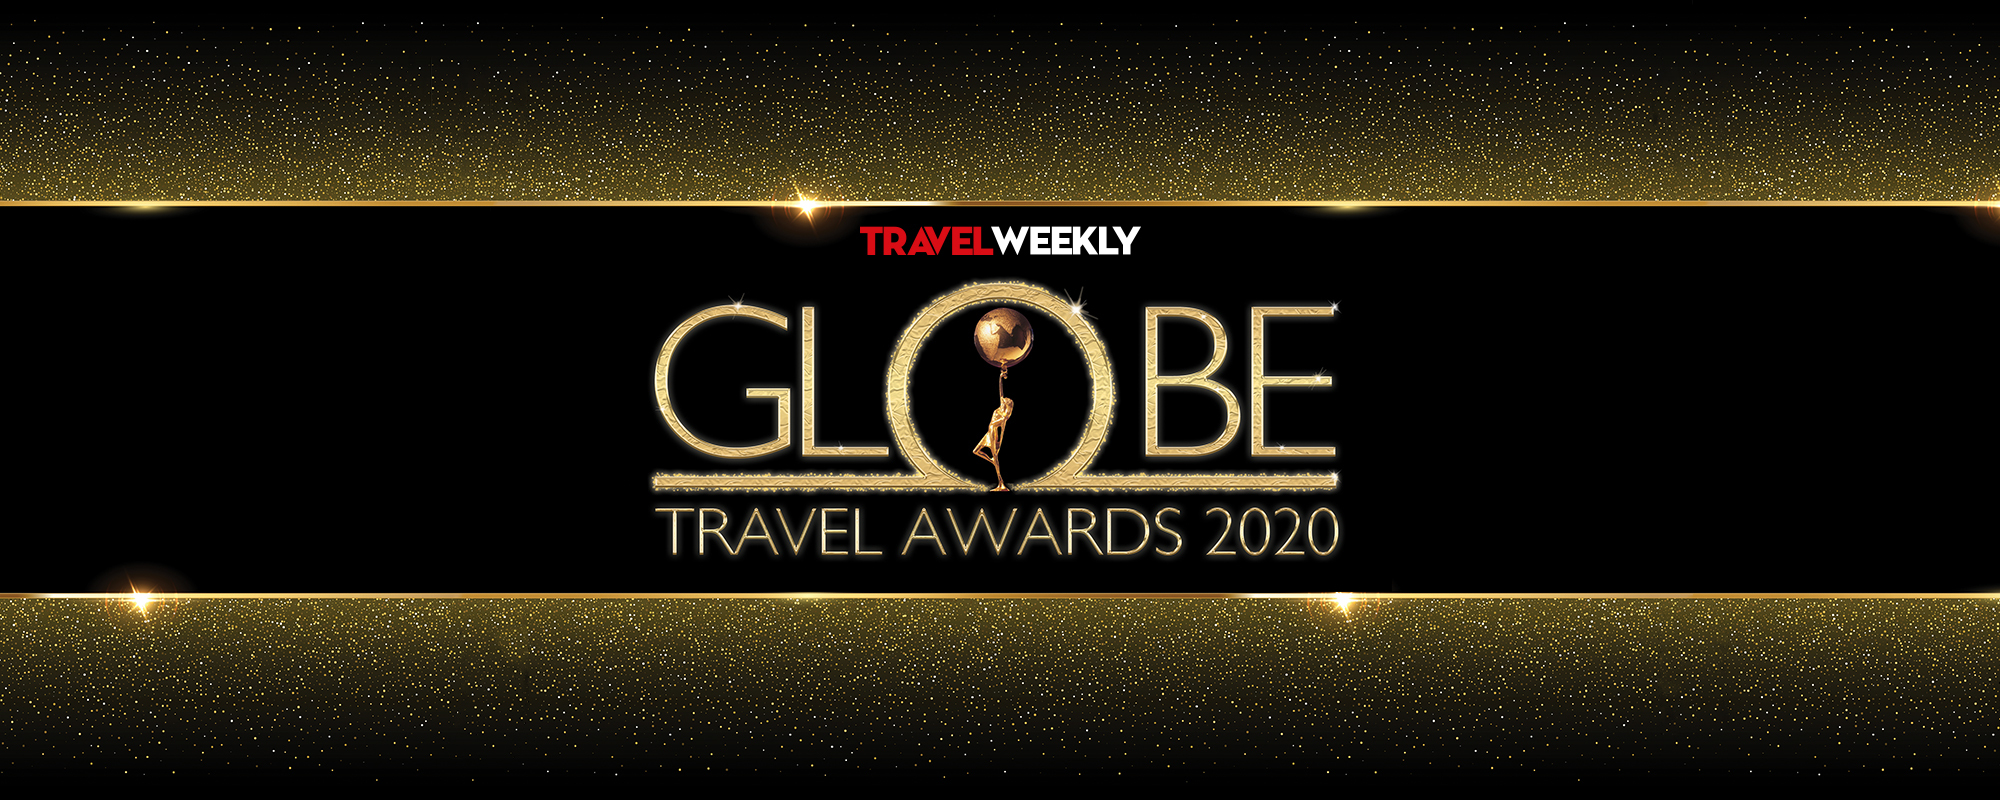 Globe Travel Awards